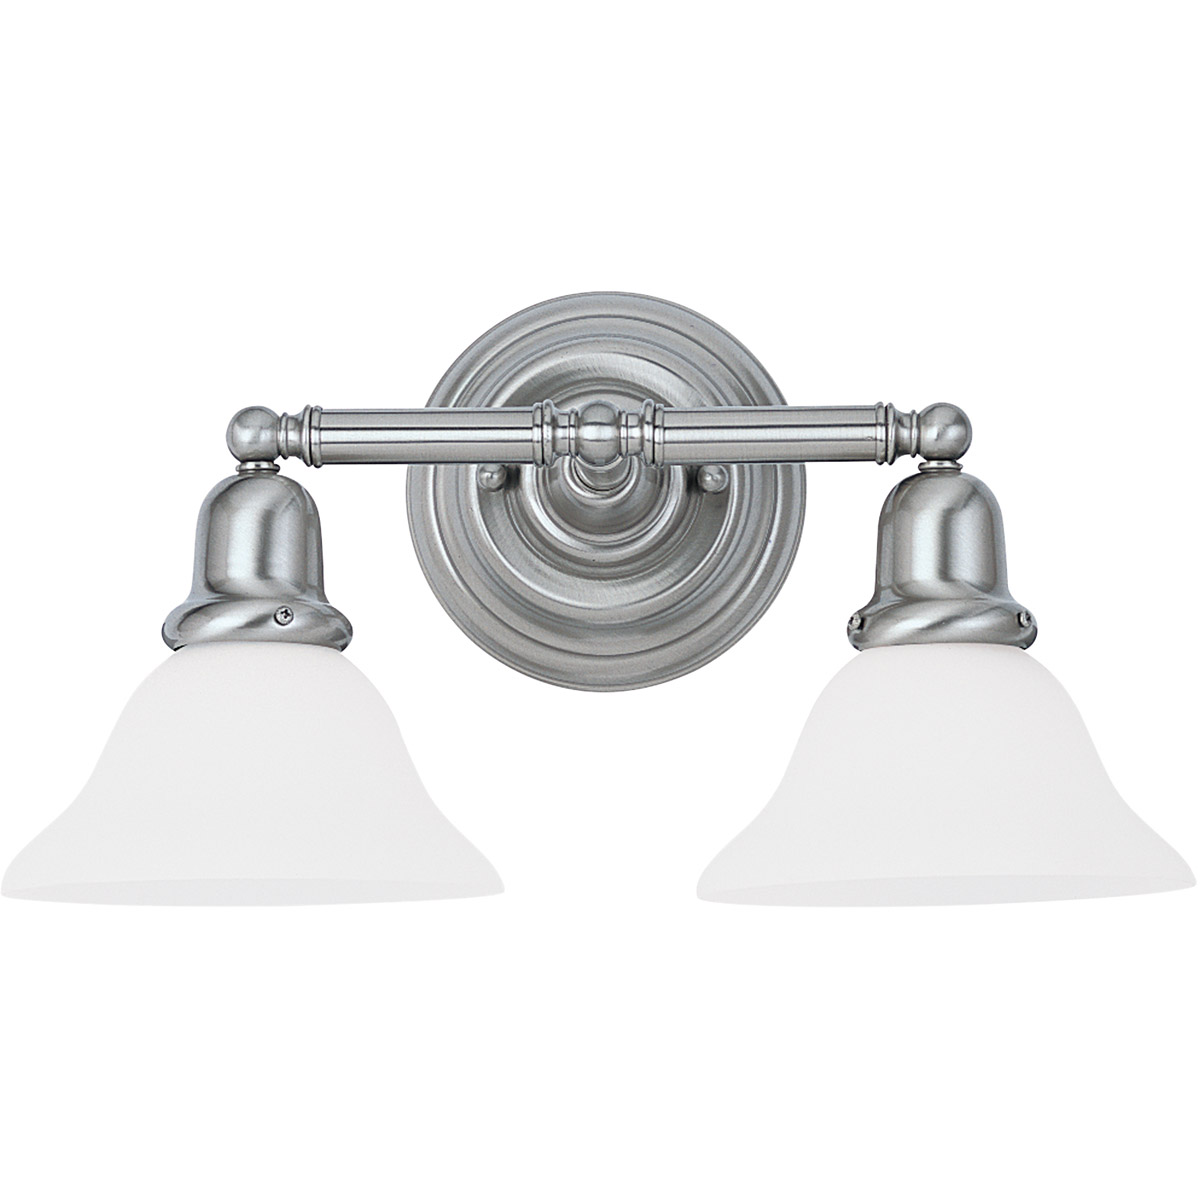 Sea Gull Lighting Sussex 2 Light Bath Vanity in Brushed Nickel 44061-962